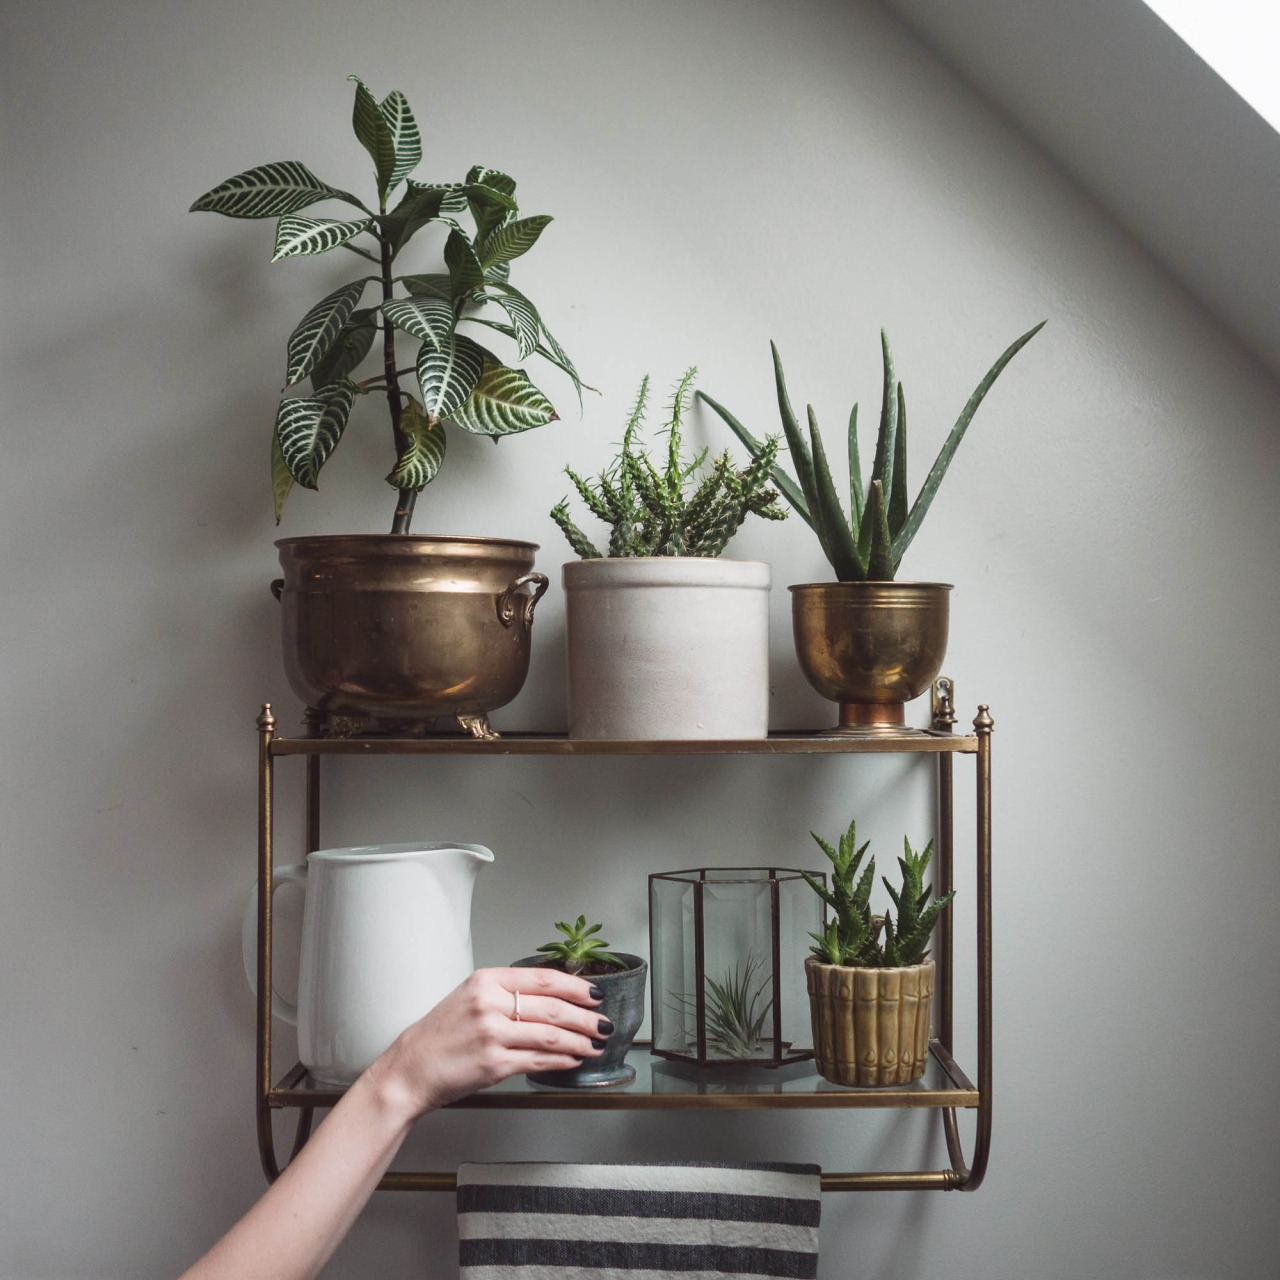 Delightful Minimal Shelf Plant Shelf 25 Indoor Garden Ideas